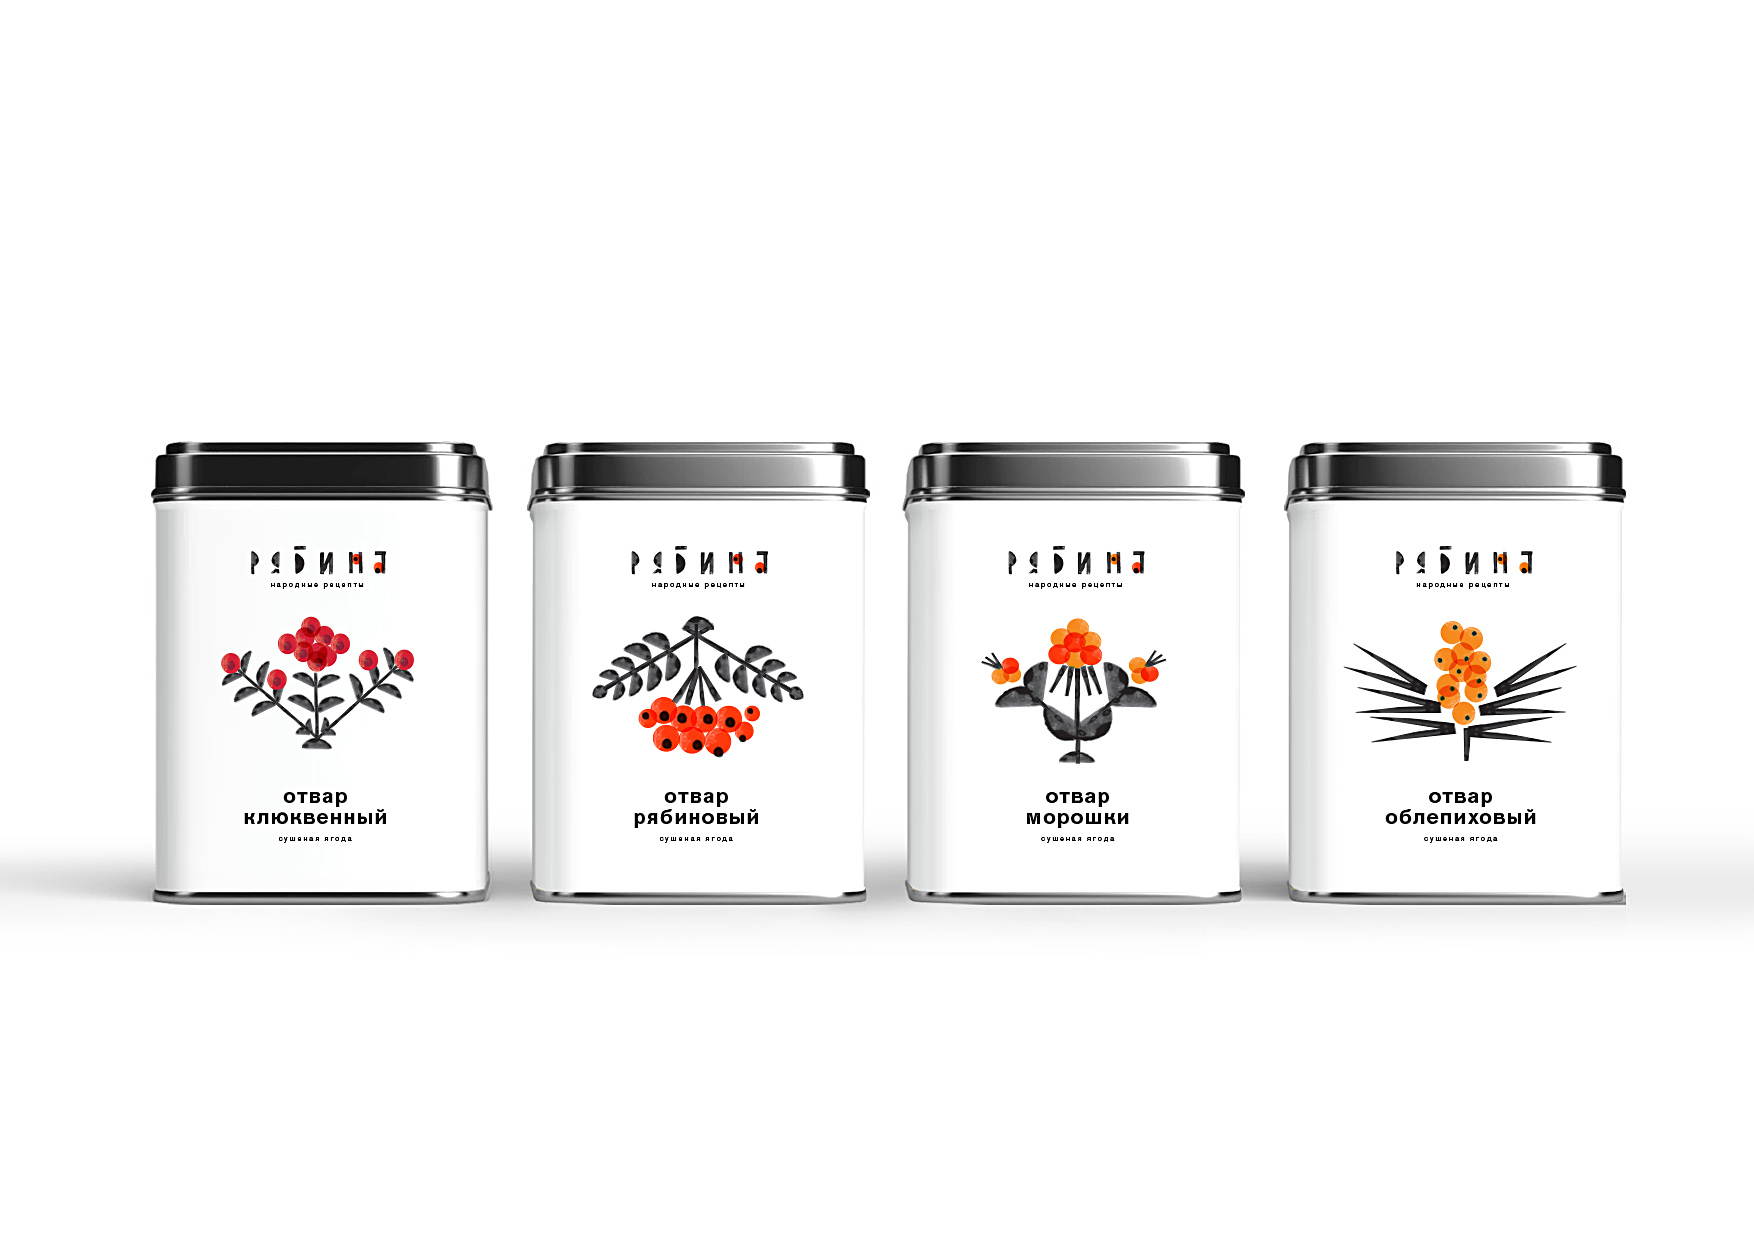 Ryabina Herbal Tea and Beverages Experimental Packaging Design Concept by Student Tatiana Dunaeva